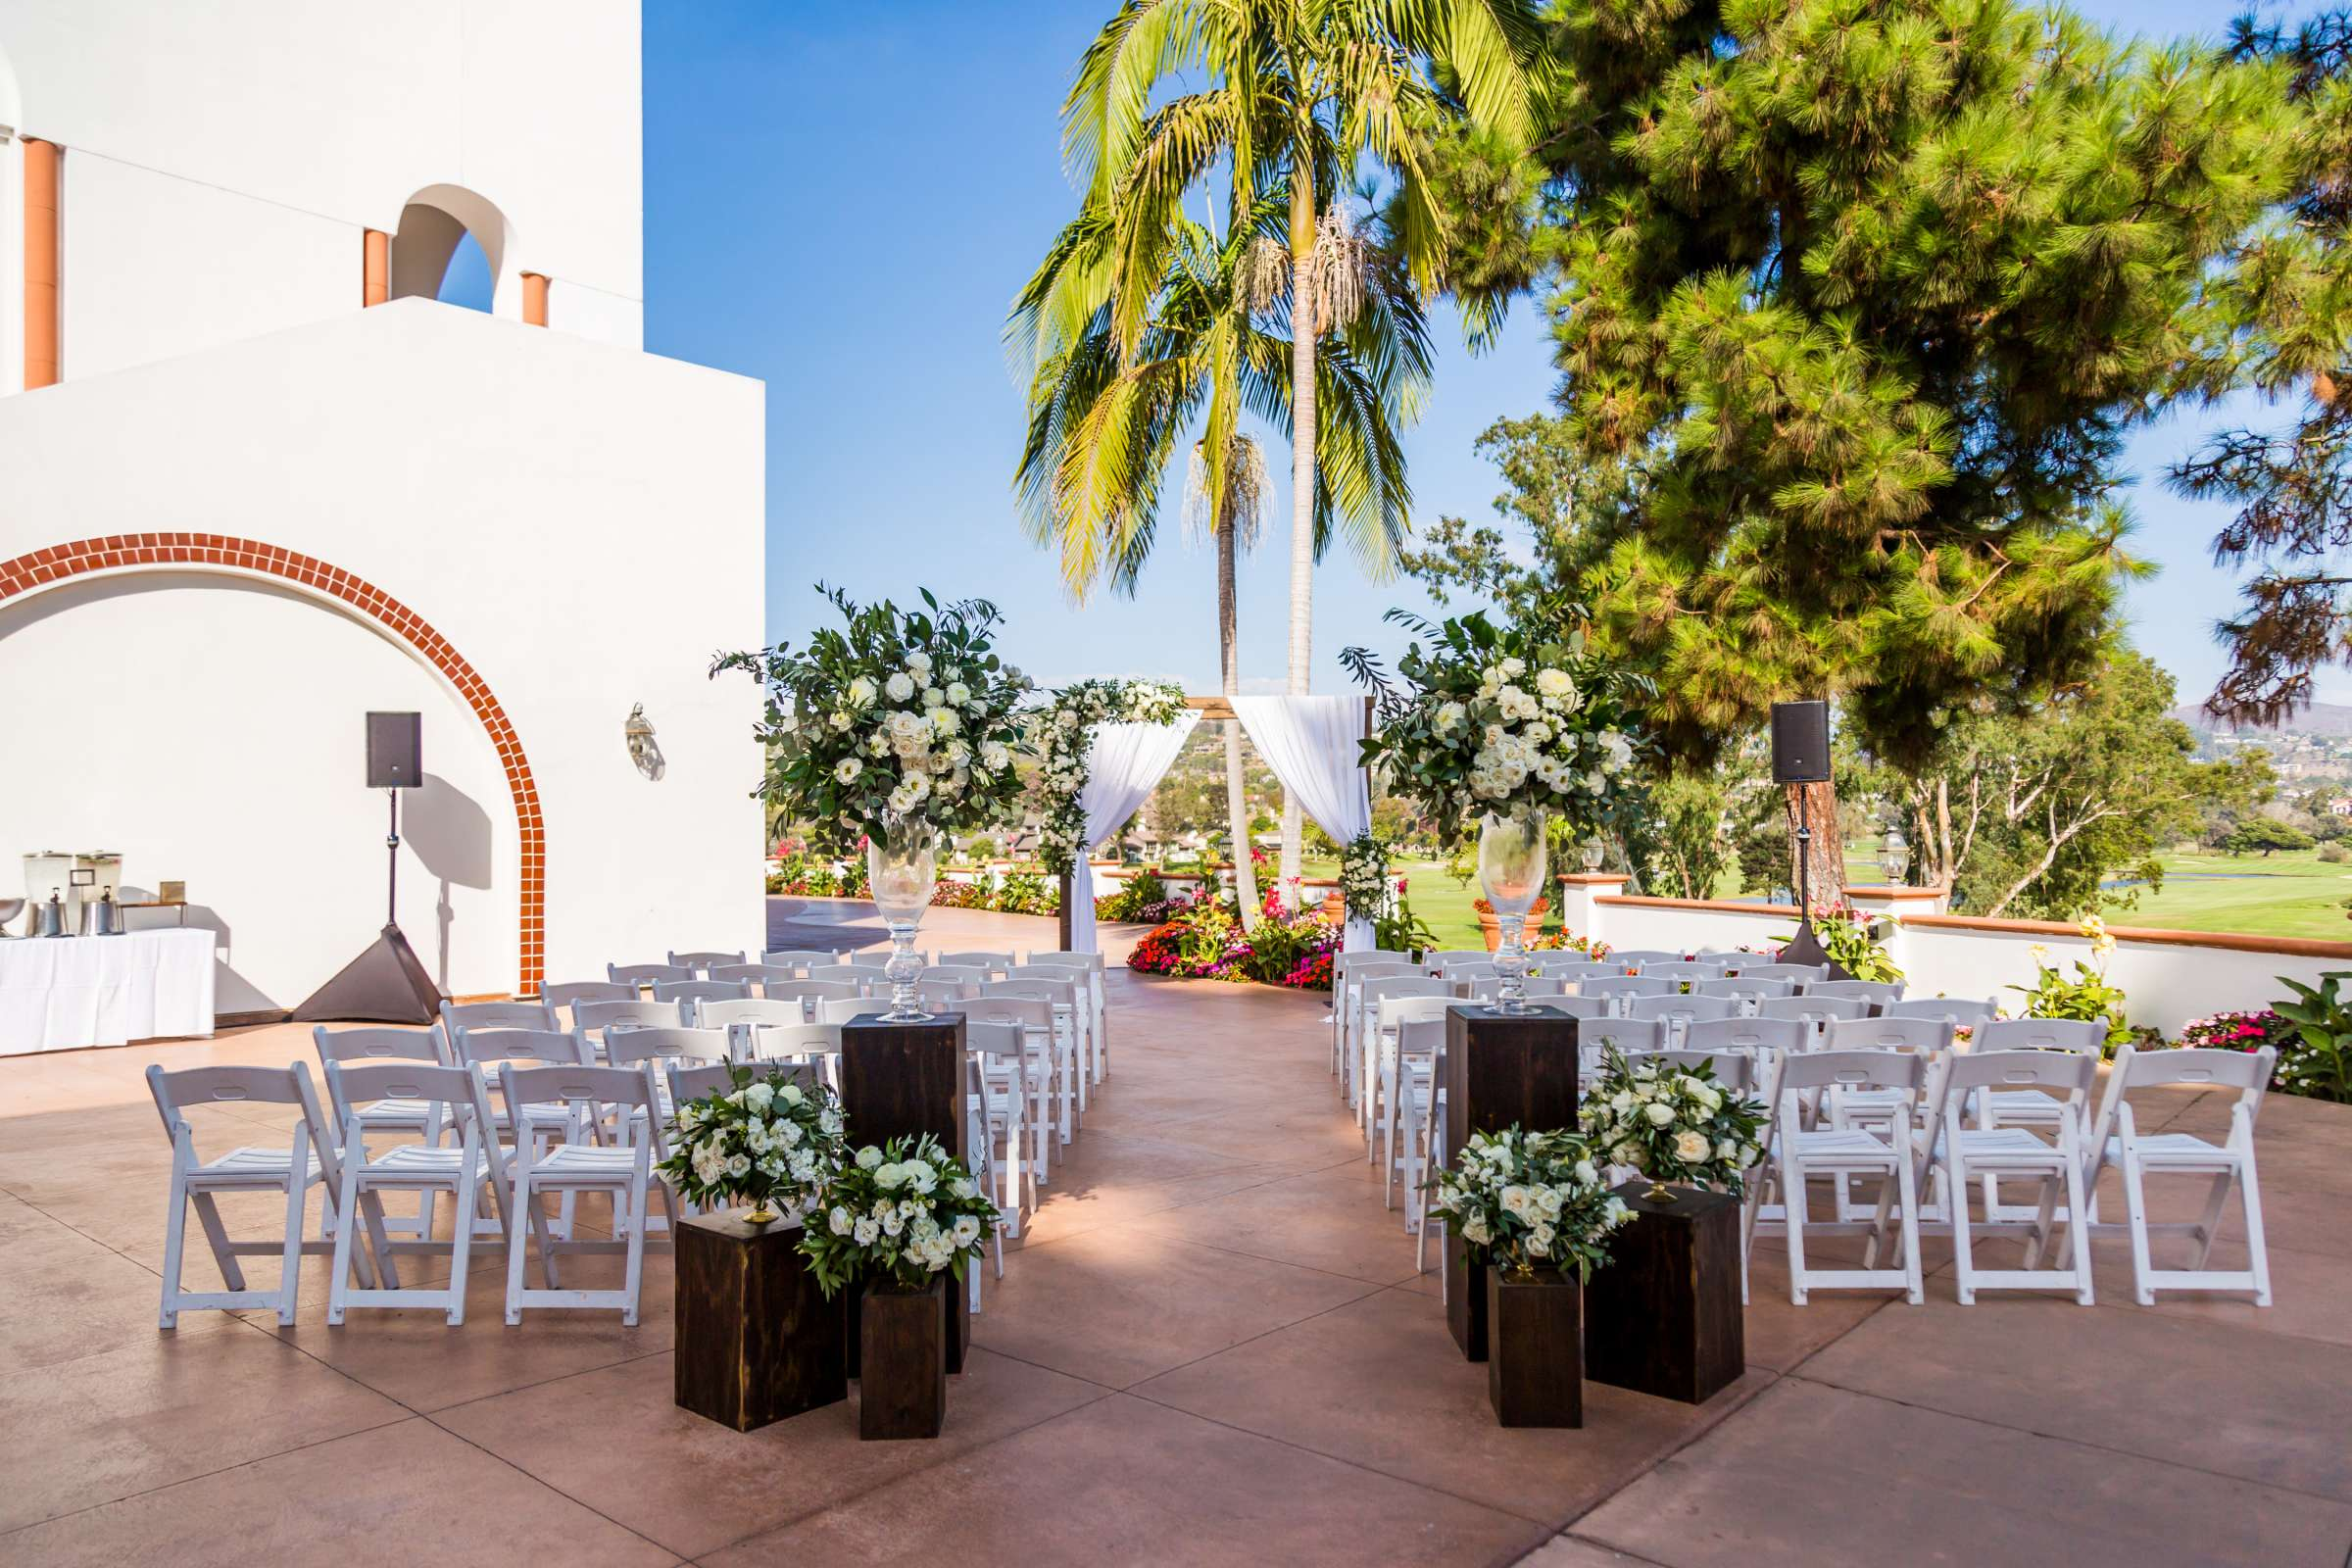 Omni La Costa Resort & Spa Wedding coordinated by Bliss Events, Pamela and Sean Wedding Photo #42 by True Photography